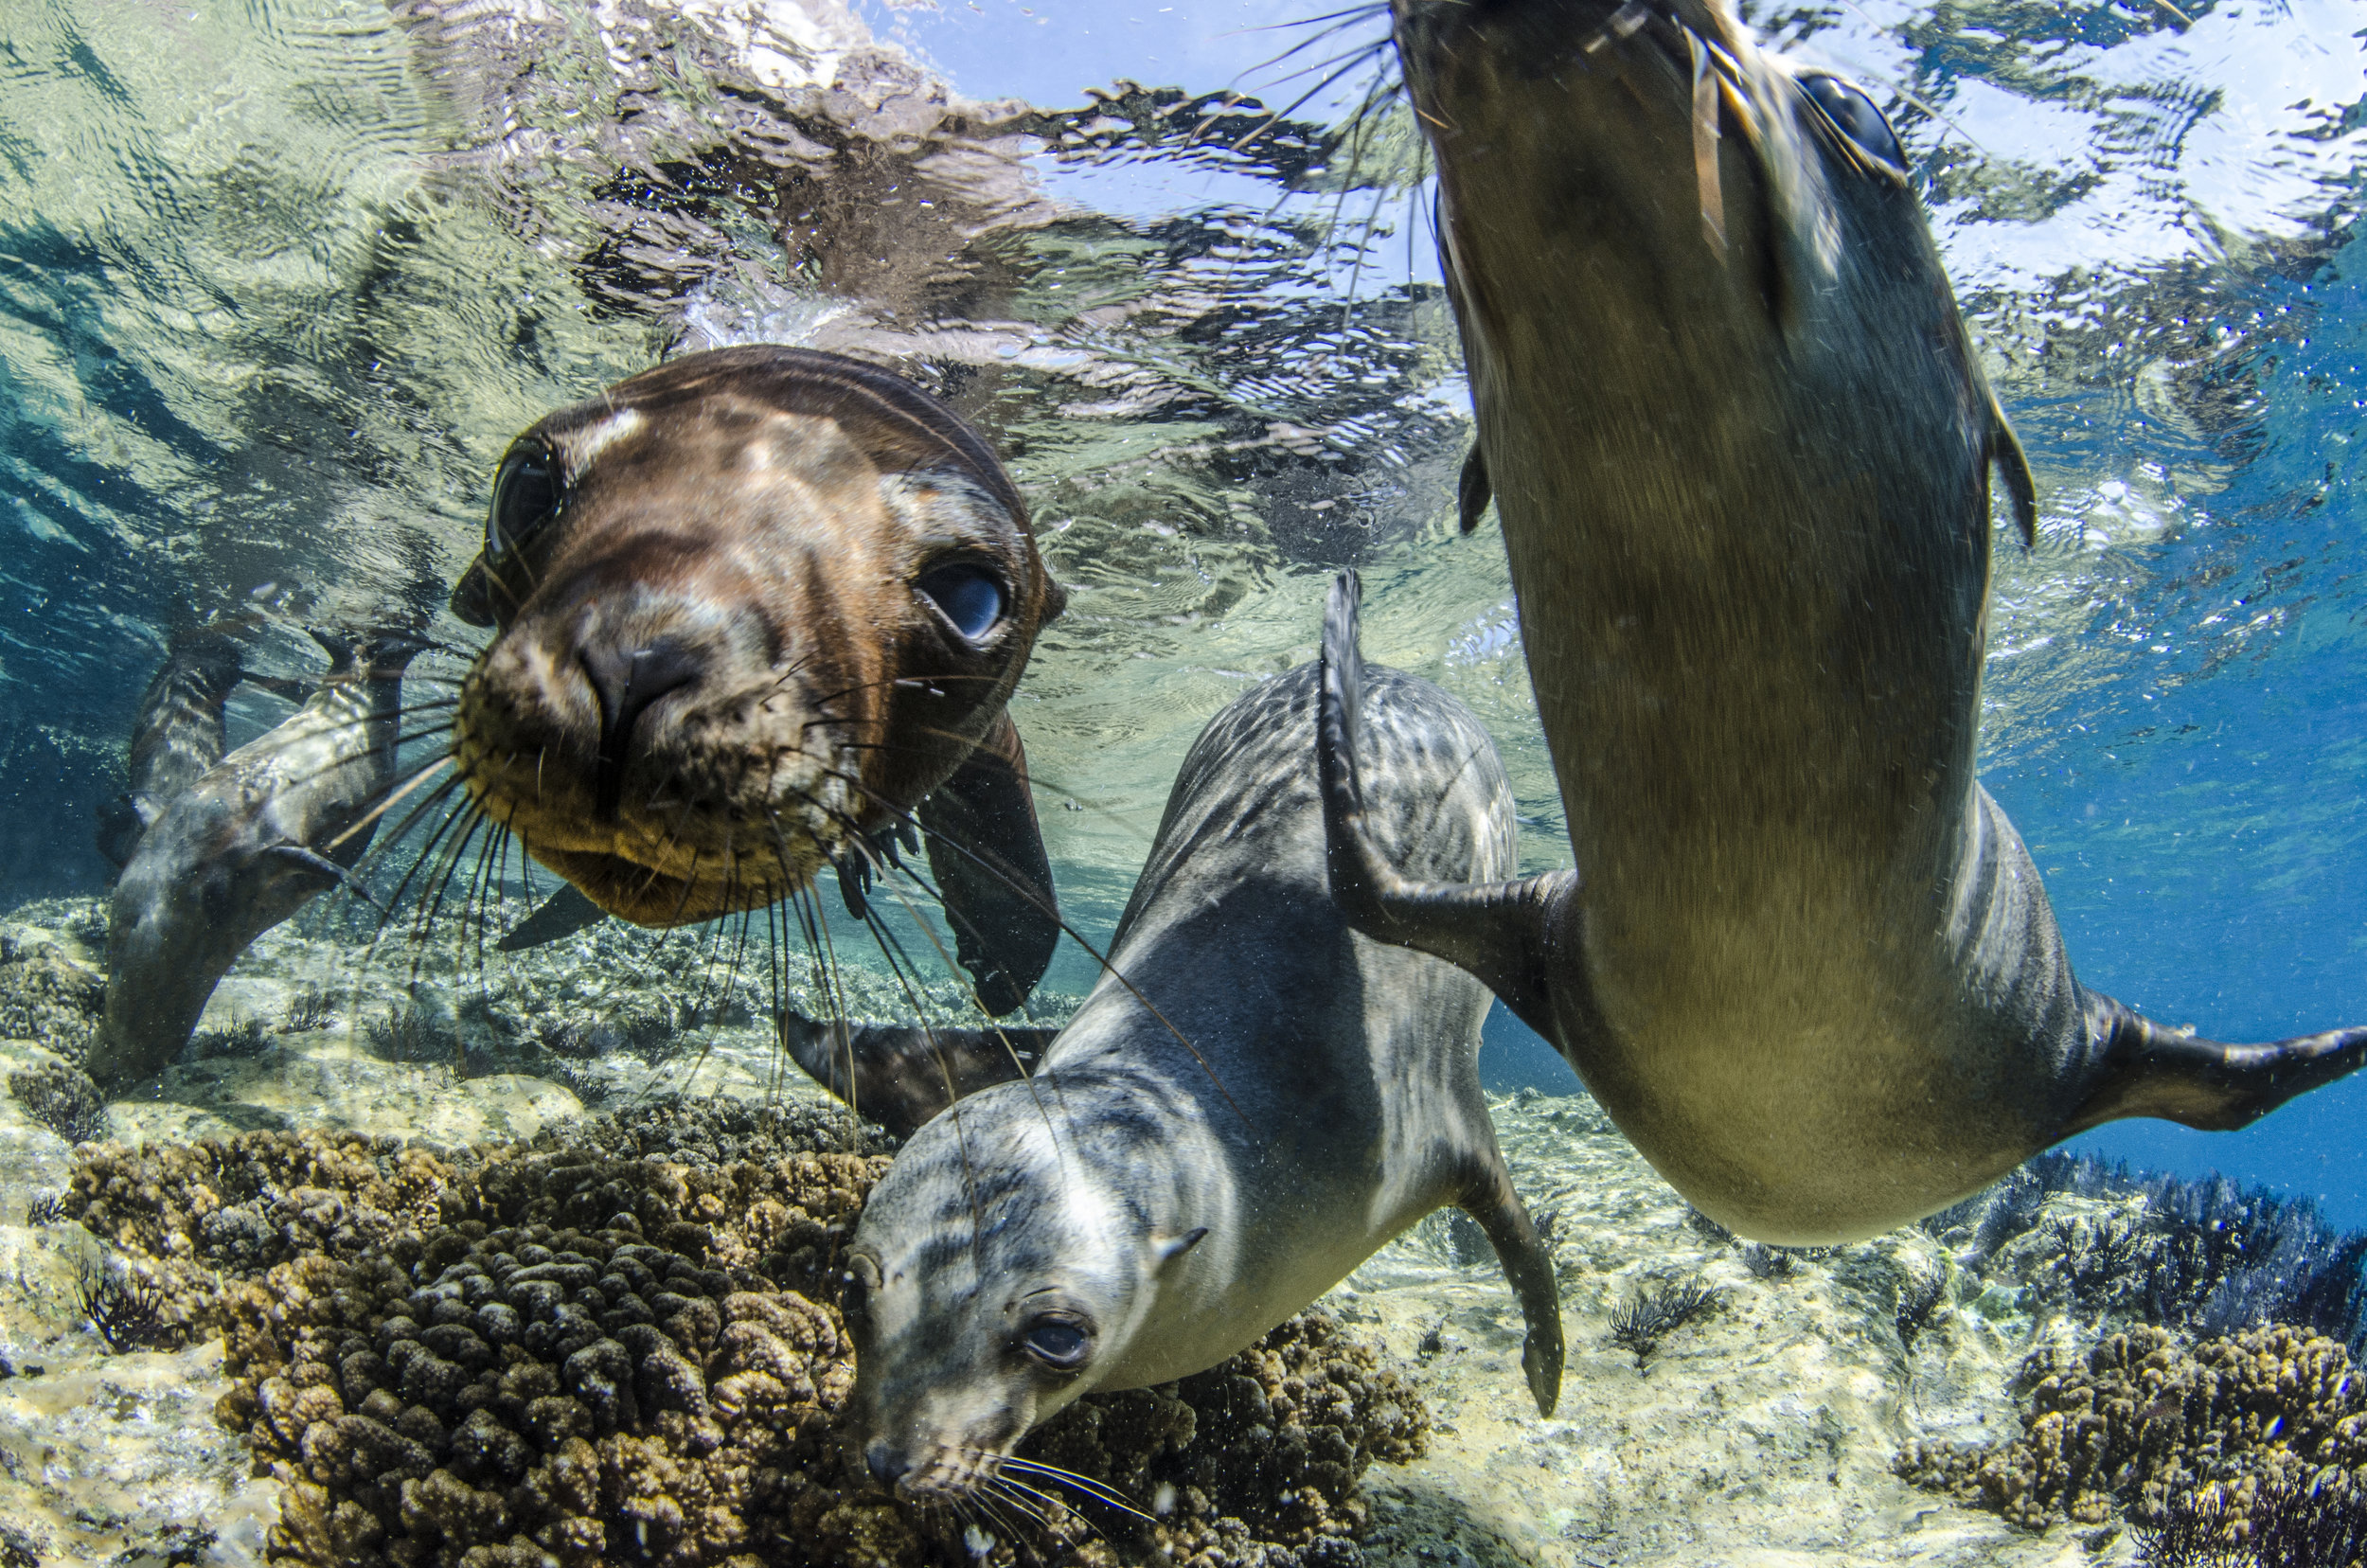 seals in the galapagos credit: Amanda cotton / coral reef image bank